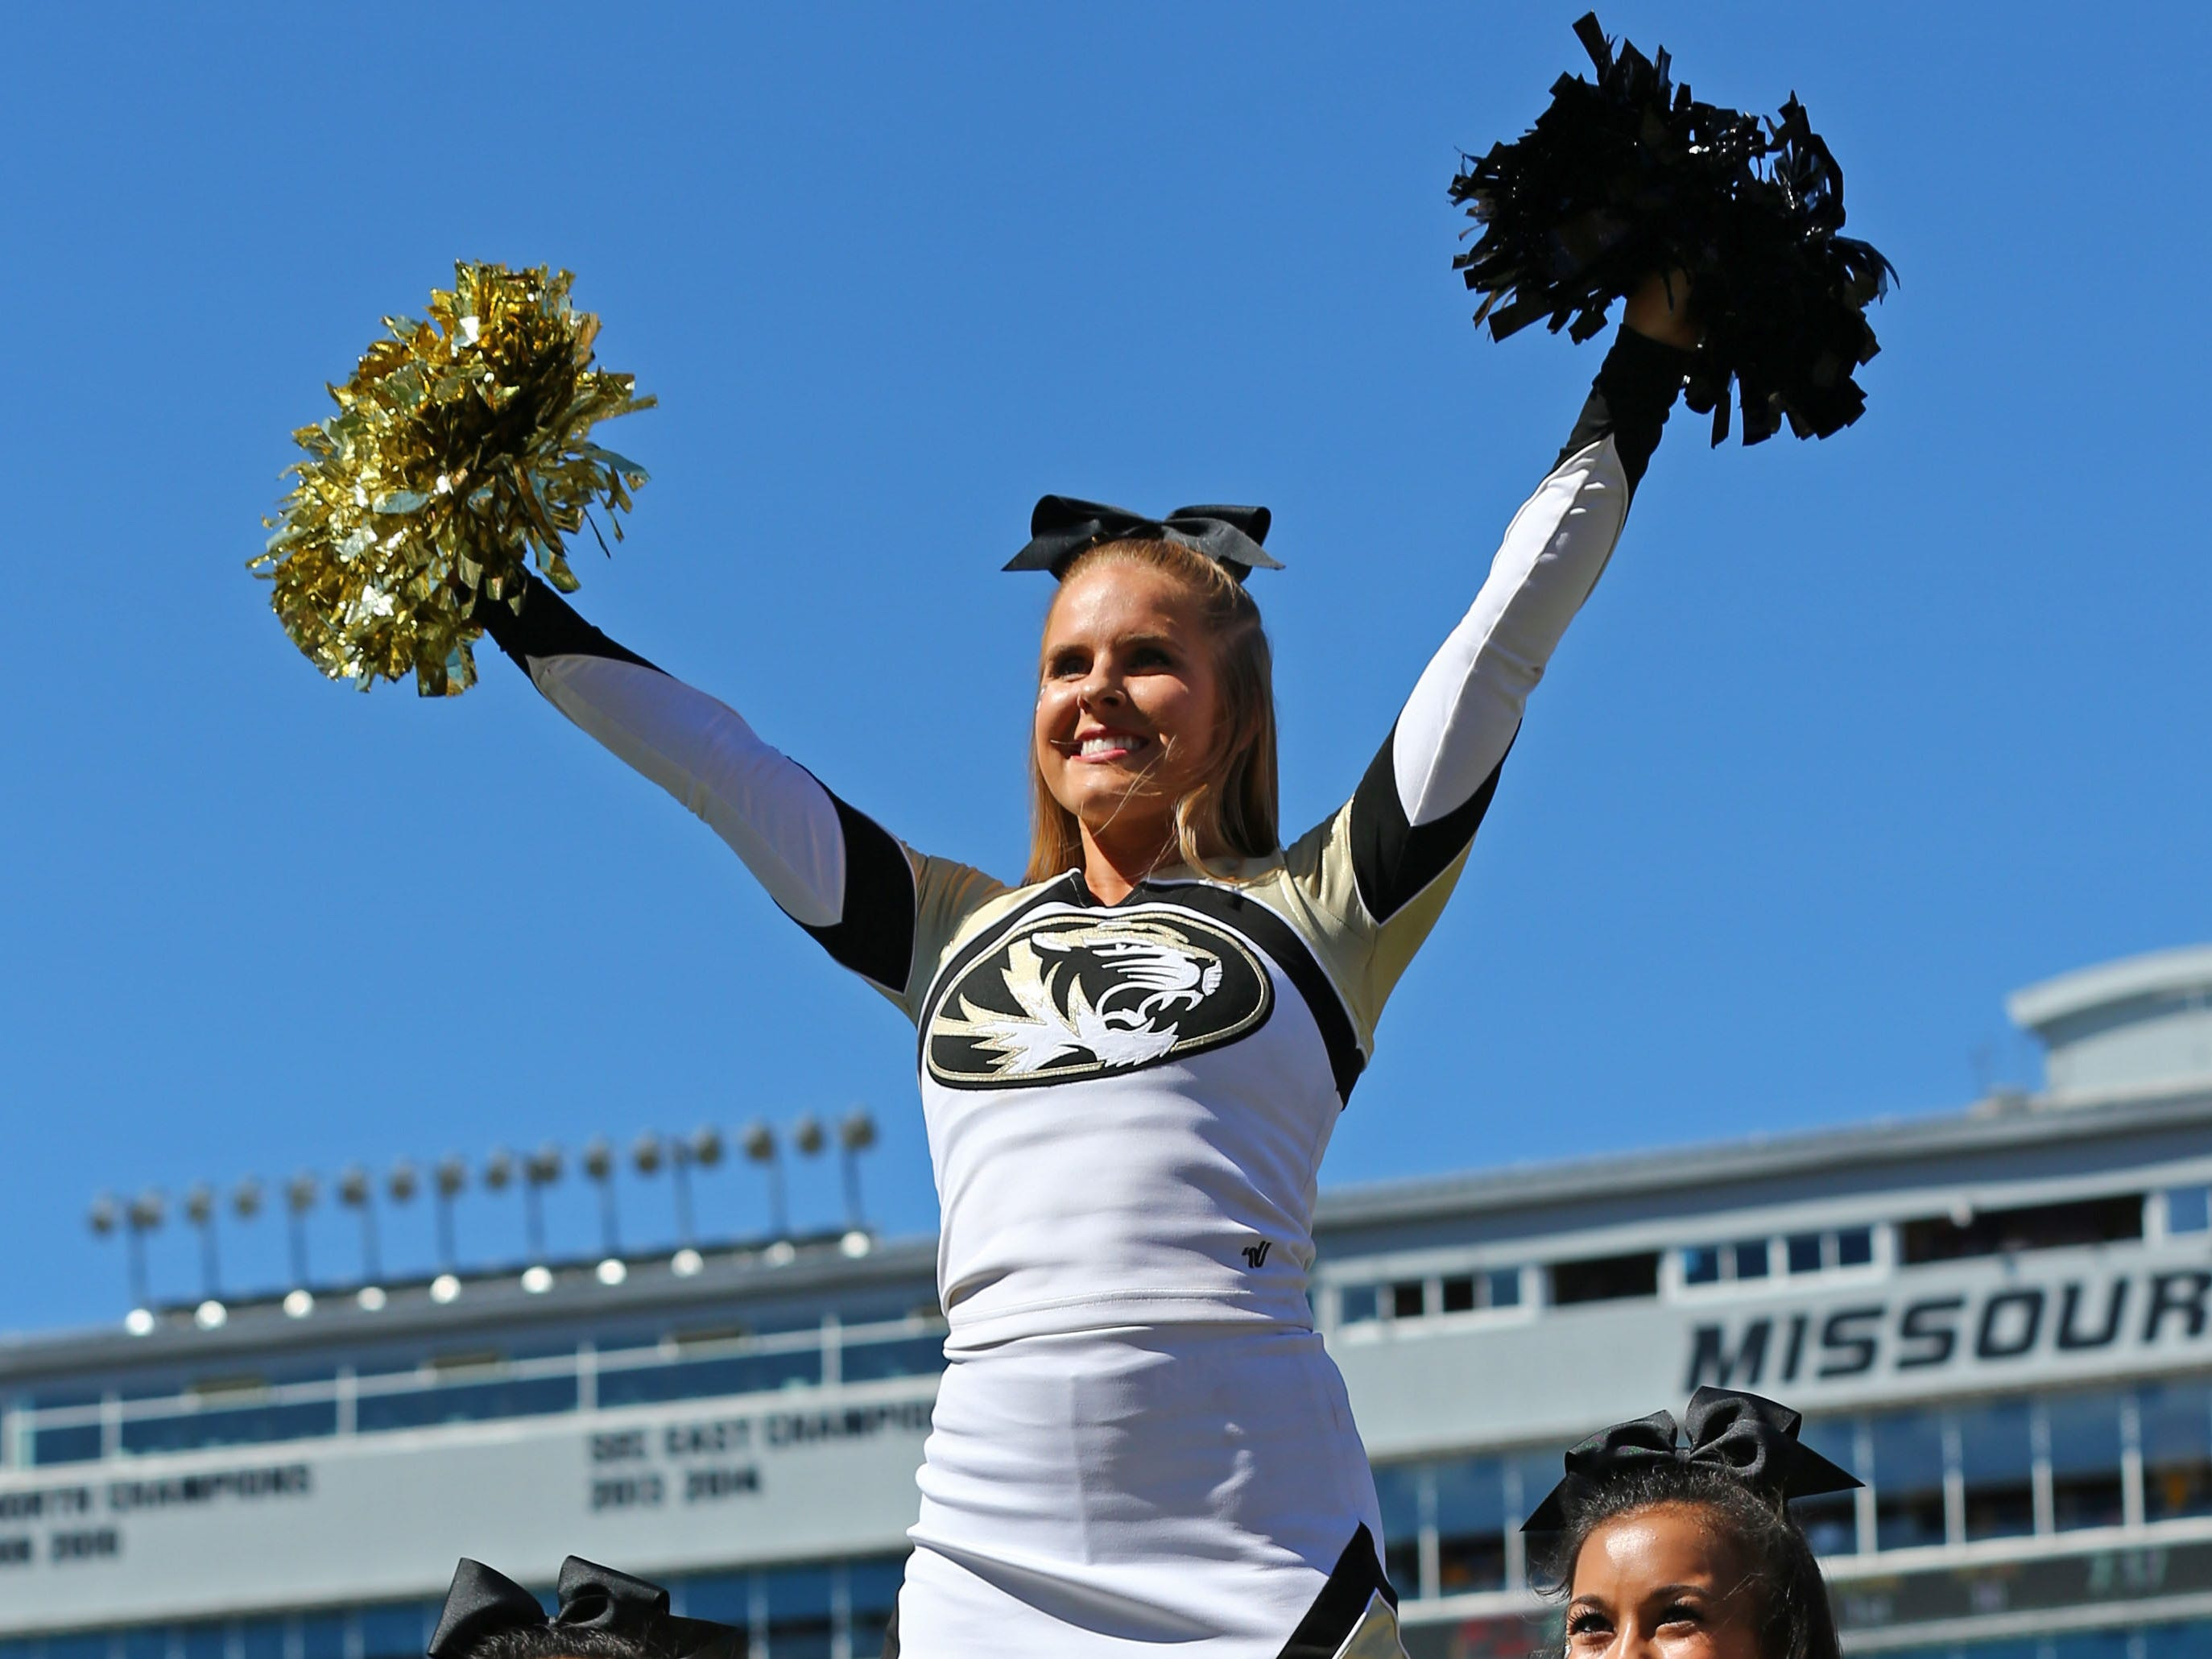 Missouri cheerleaders perform in the first half against Georgia at Memorial Stadium/Faurot Field. DAY Sports